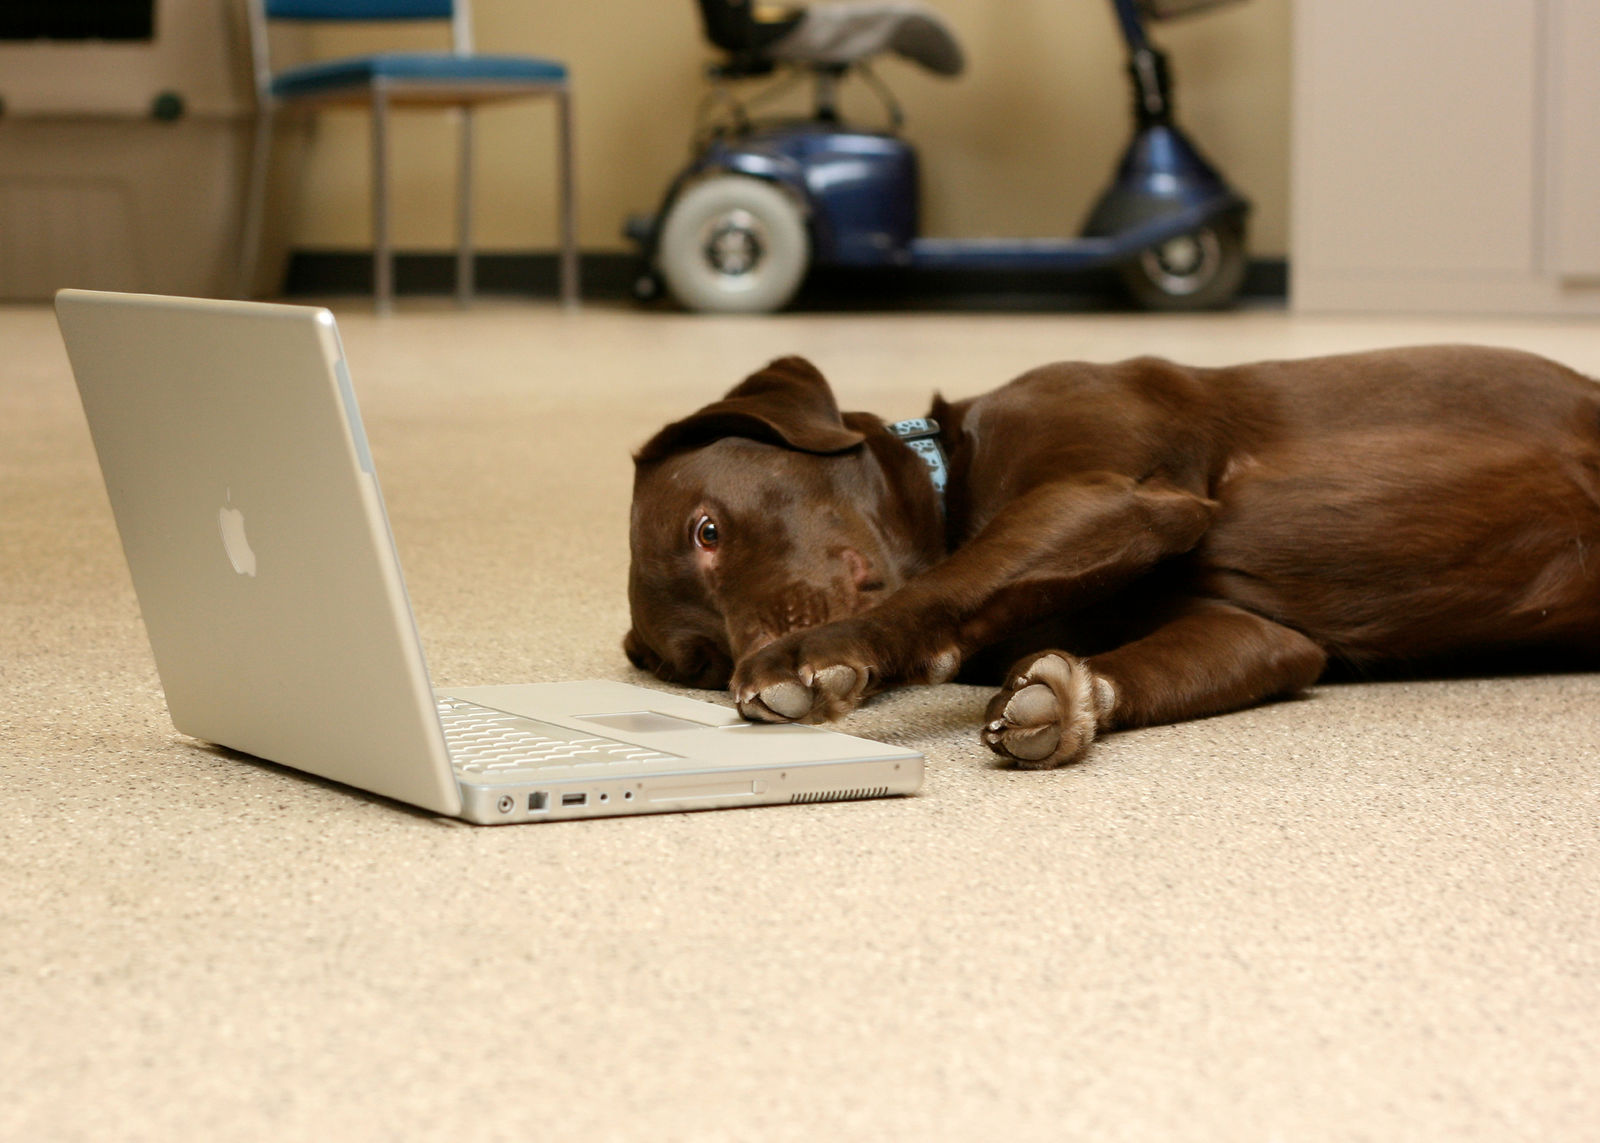 Brown dog laying in front of laptop computer